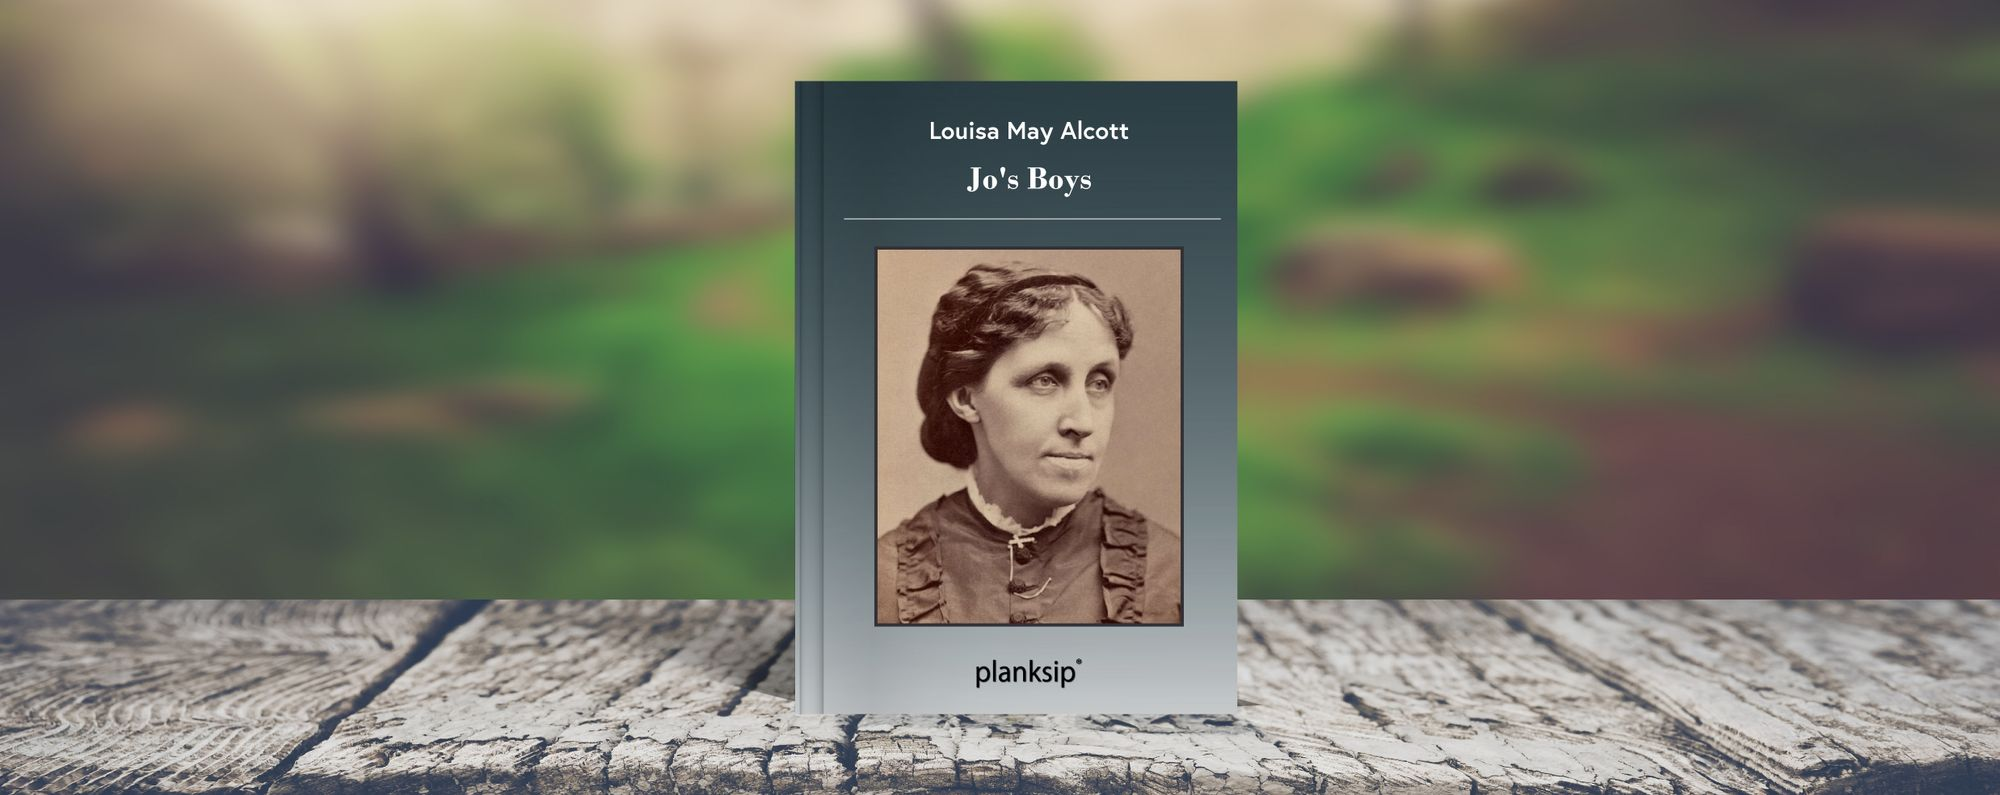 Jo's Boys by Louisa May Alcott (1832-1888). Published by planksip